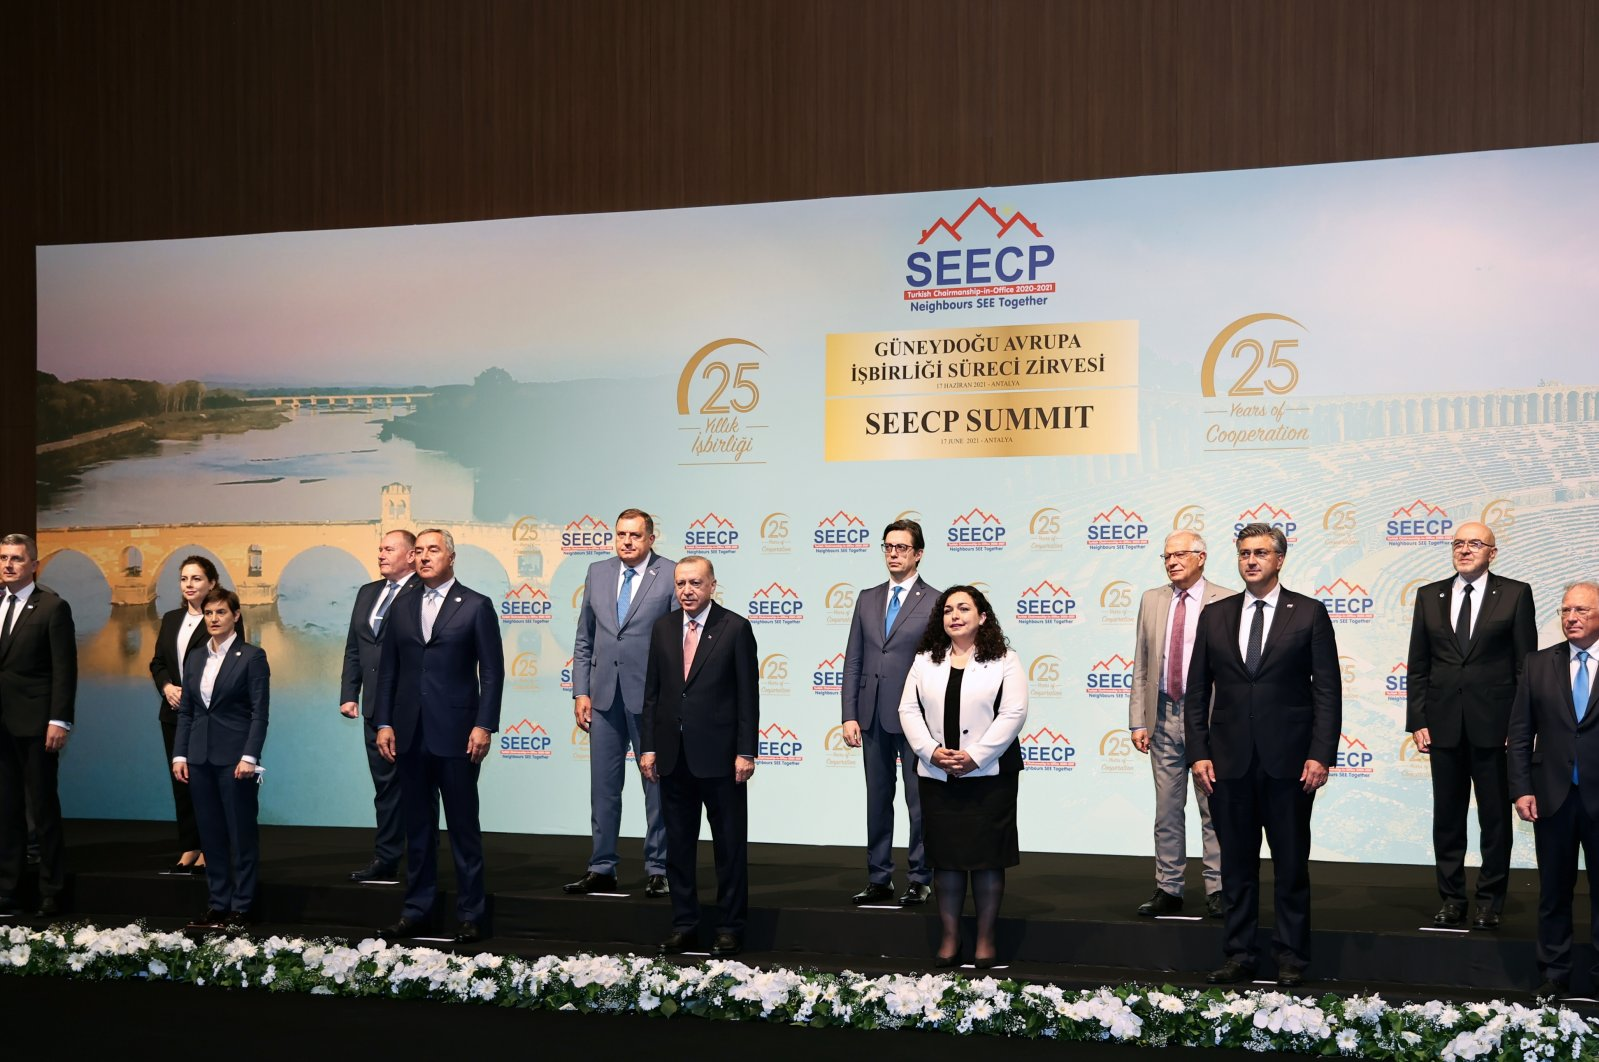 President Recep Tayyip Erdoğan (C) is pictured with participants in the Southeast European Cooperation Process (SEECP) summit in Antalya, Turkey, June 17, 2021. (AA Photo)